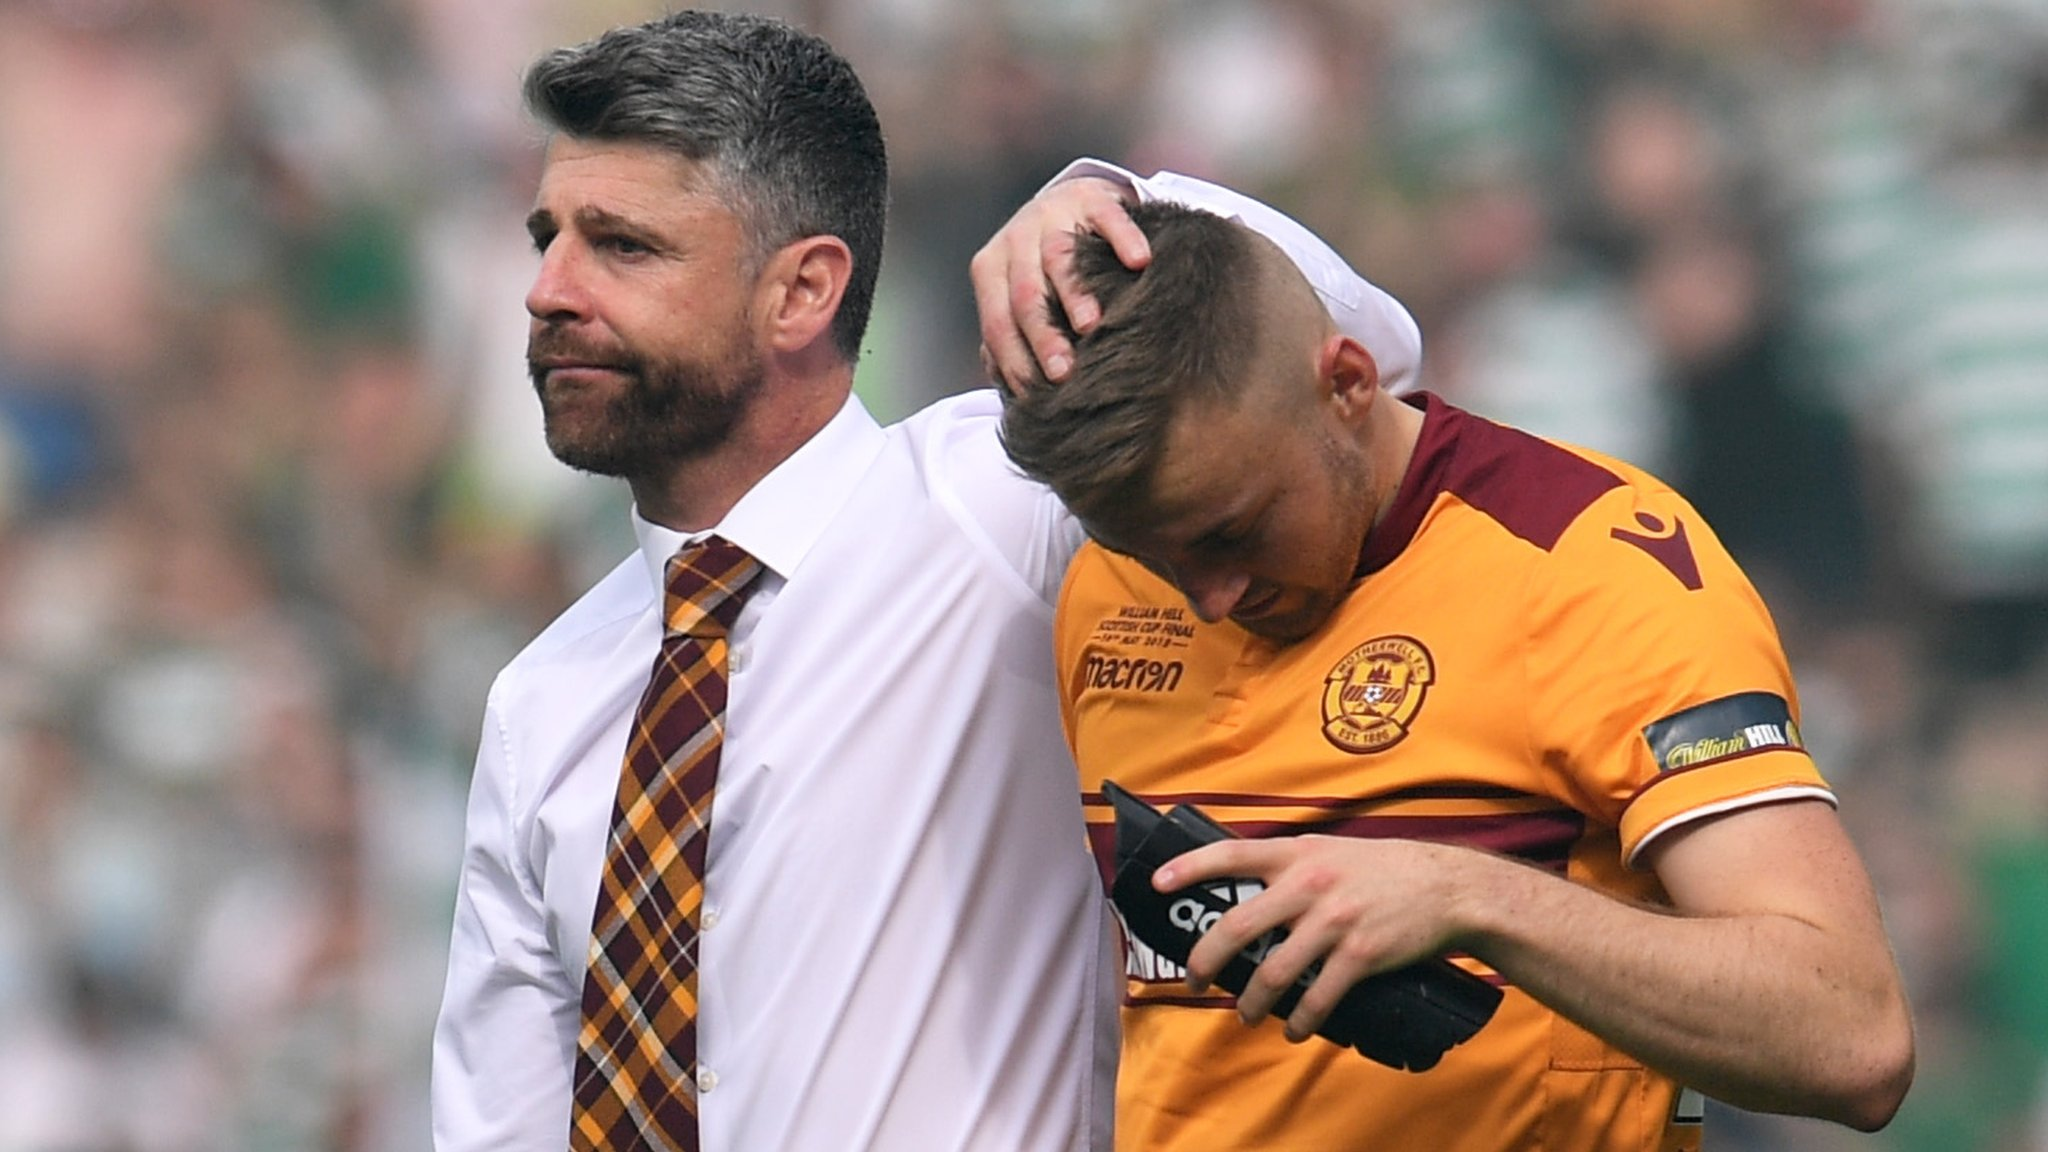 Celtic 2-0 Motherwell: Manager Stephen Robinson reflects on 'terrific' 'Well season